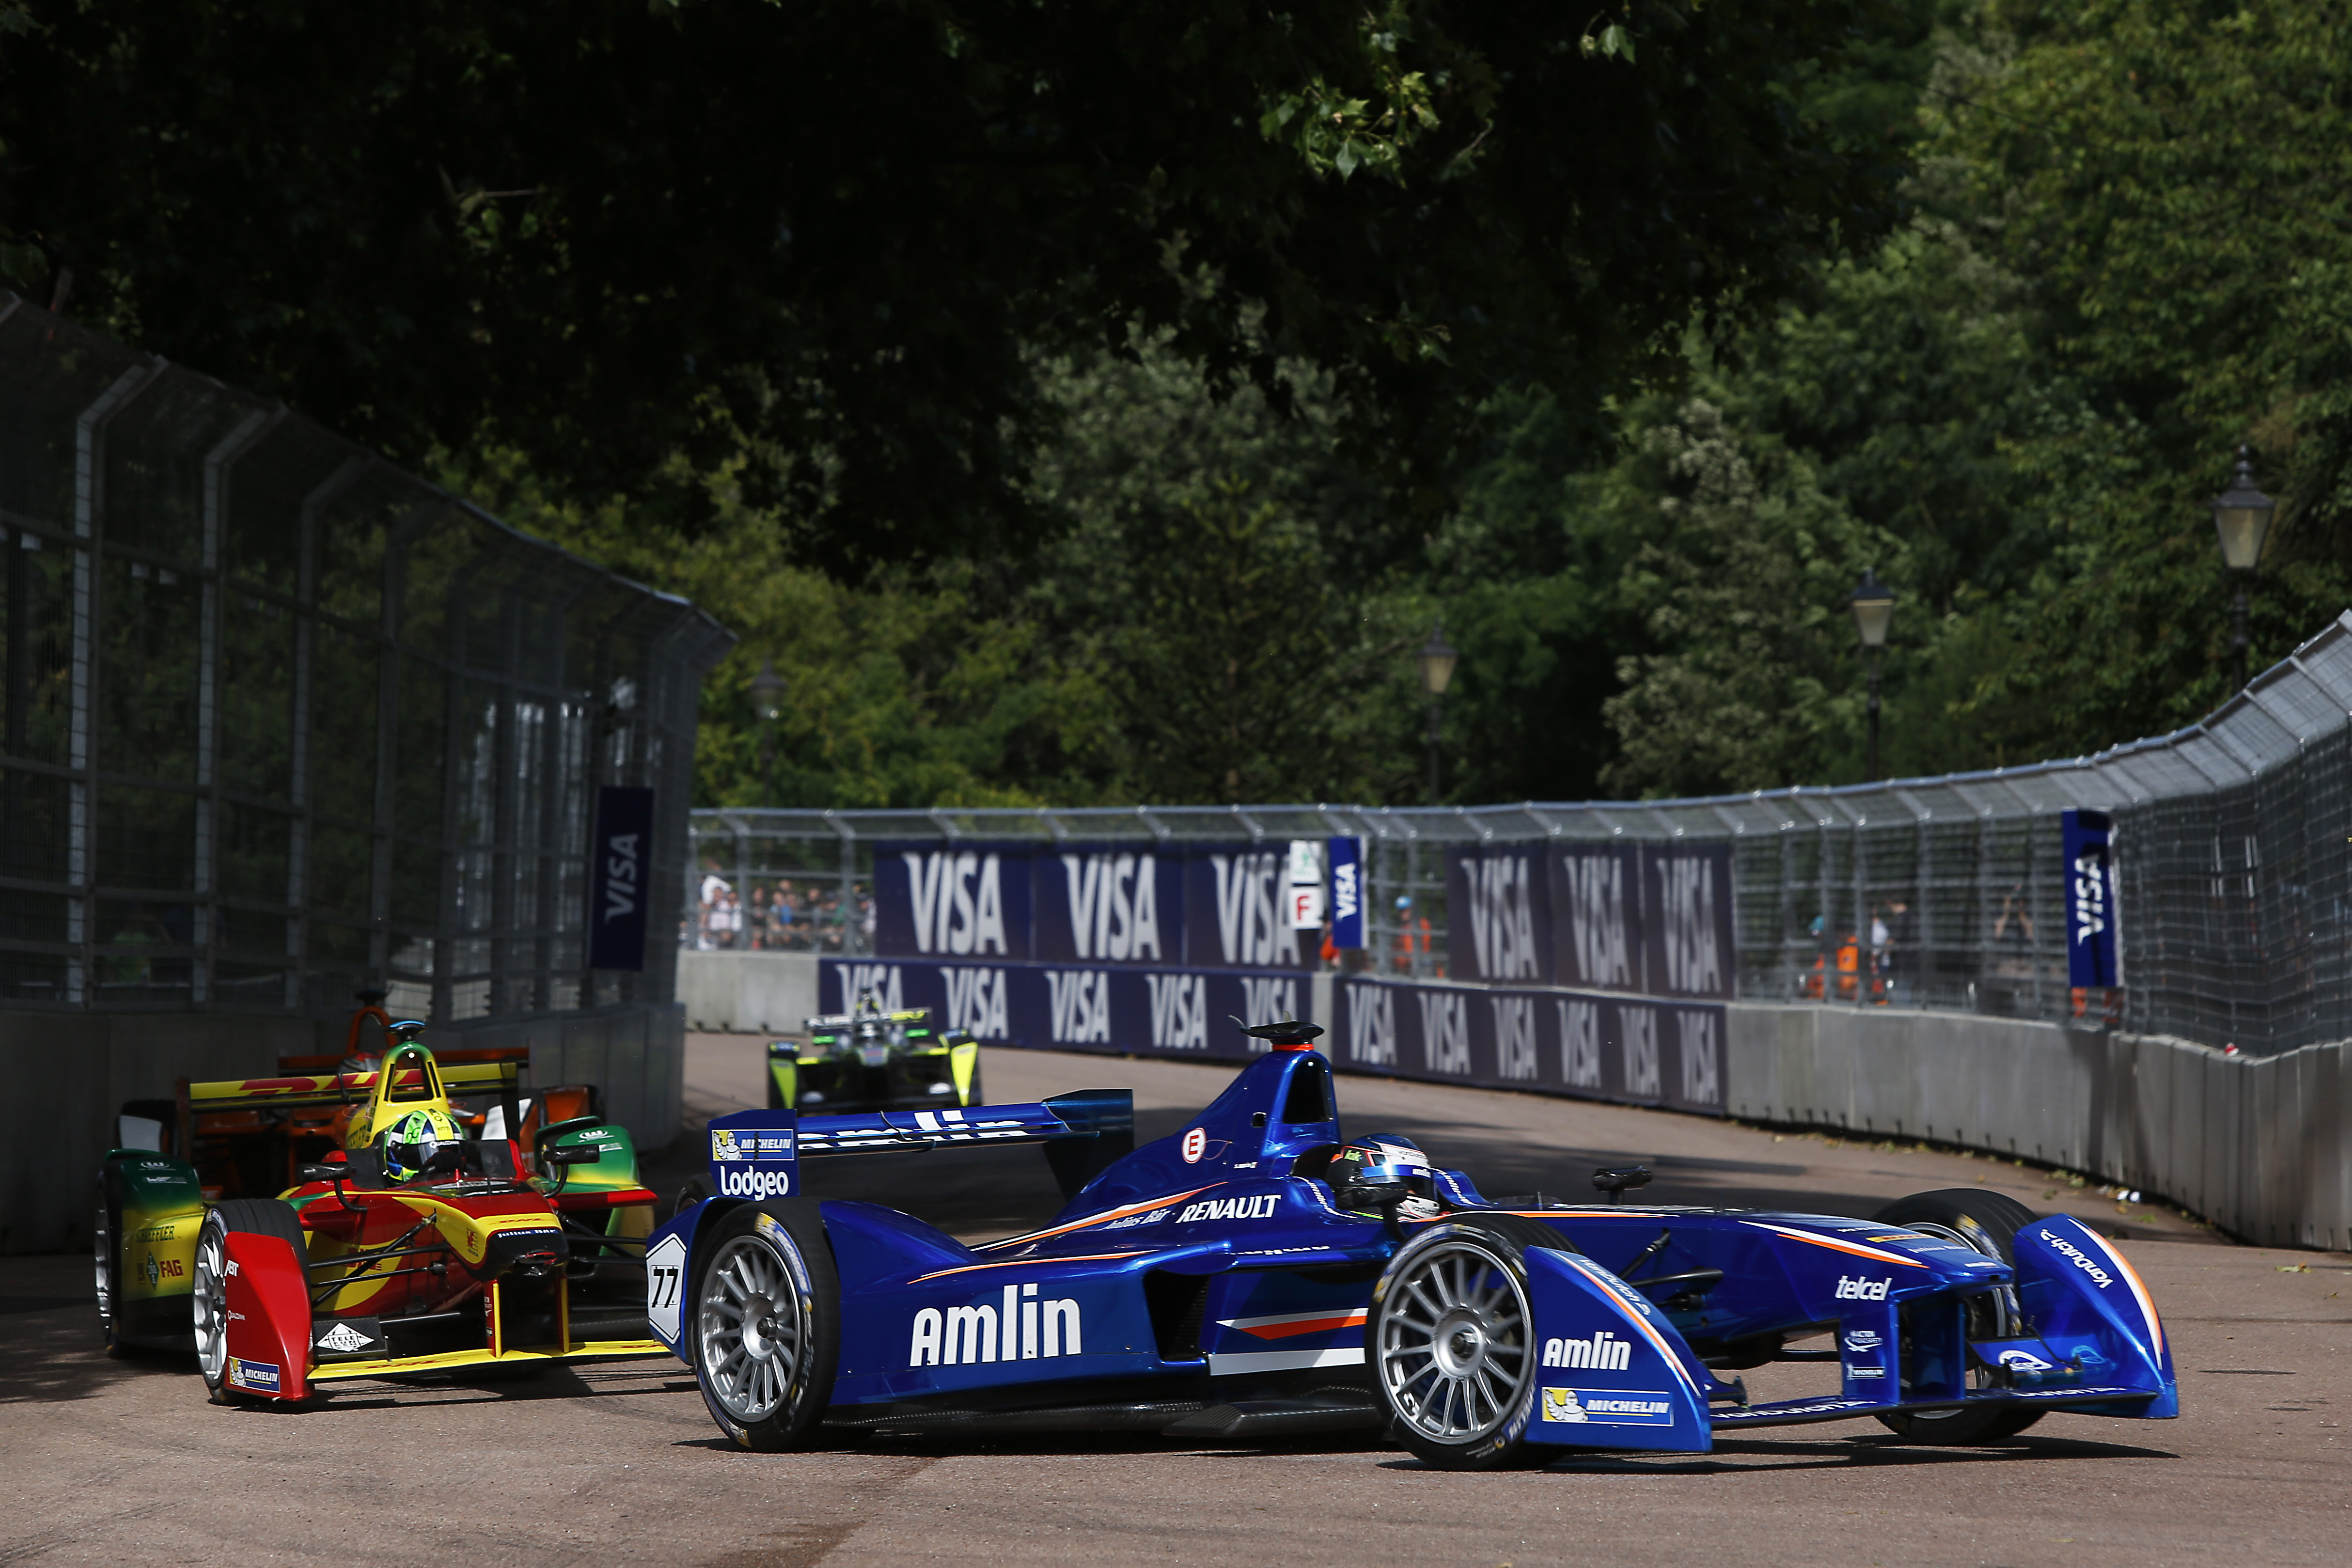 MSVR News - MSVR appointed sporting club for 2016 Formula E London ePrix